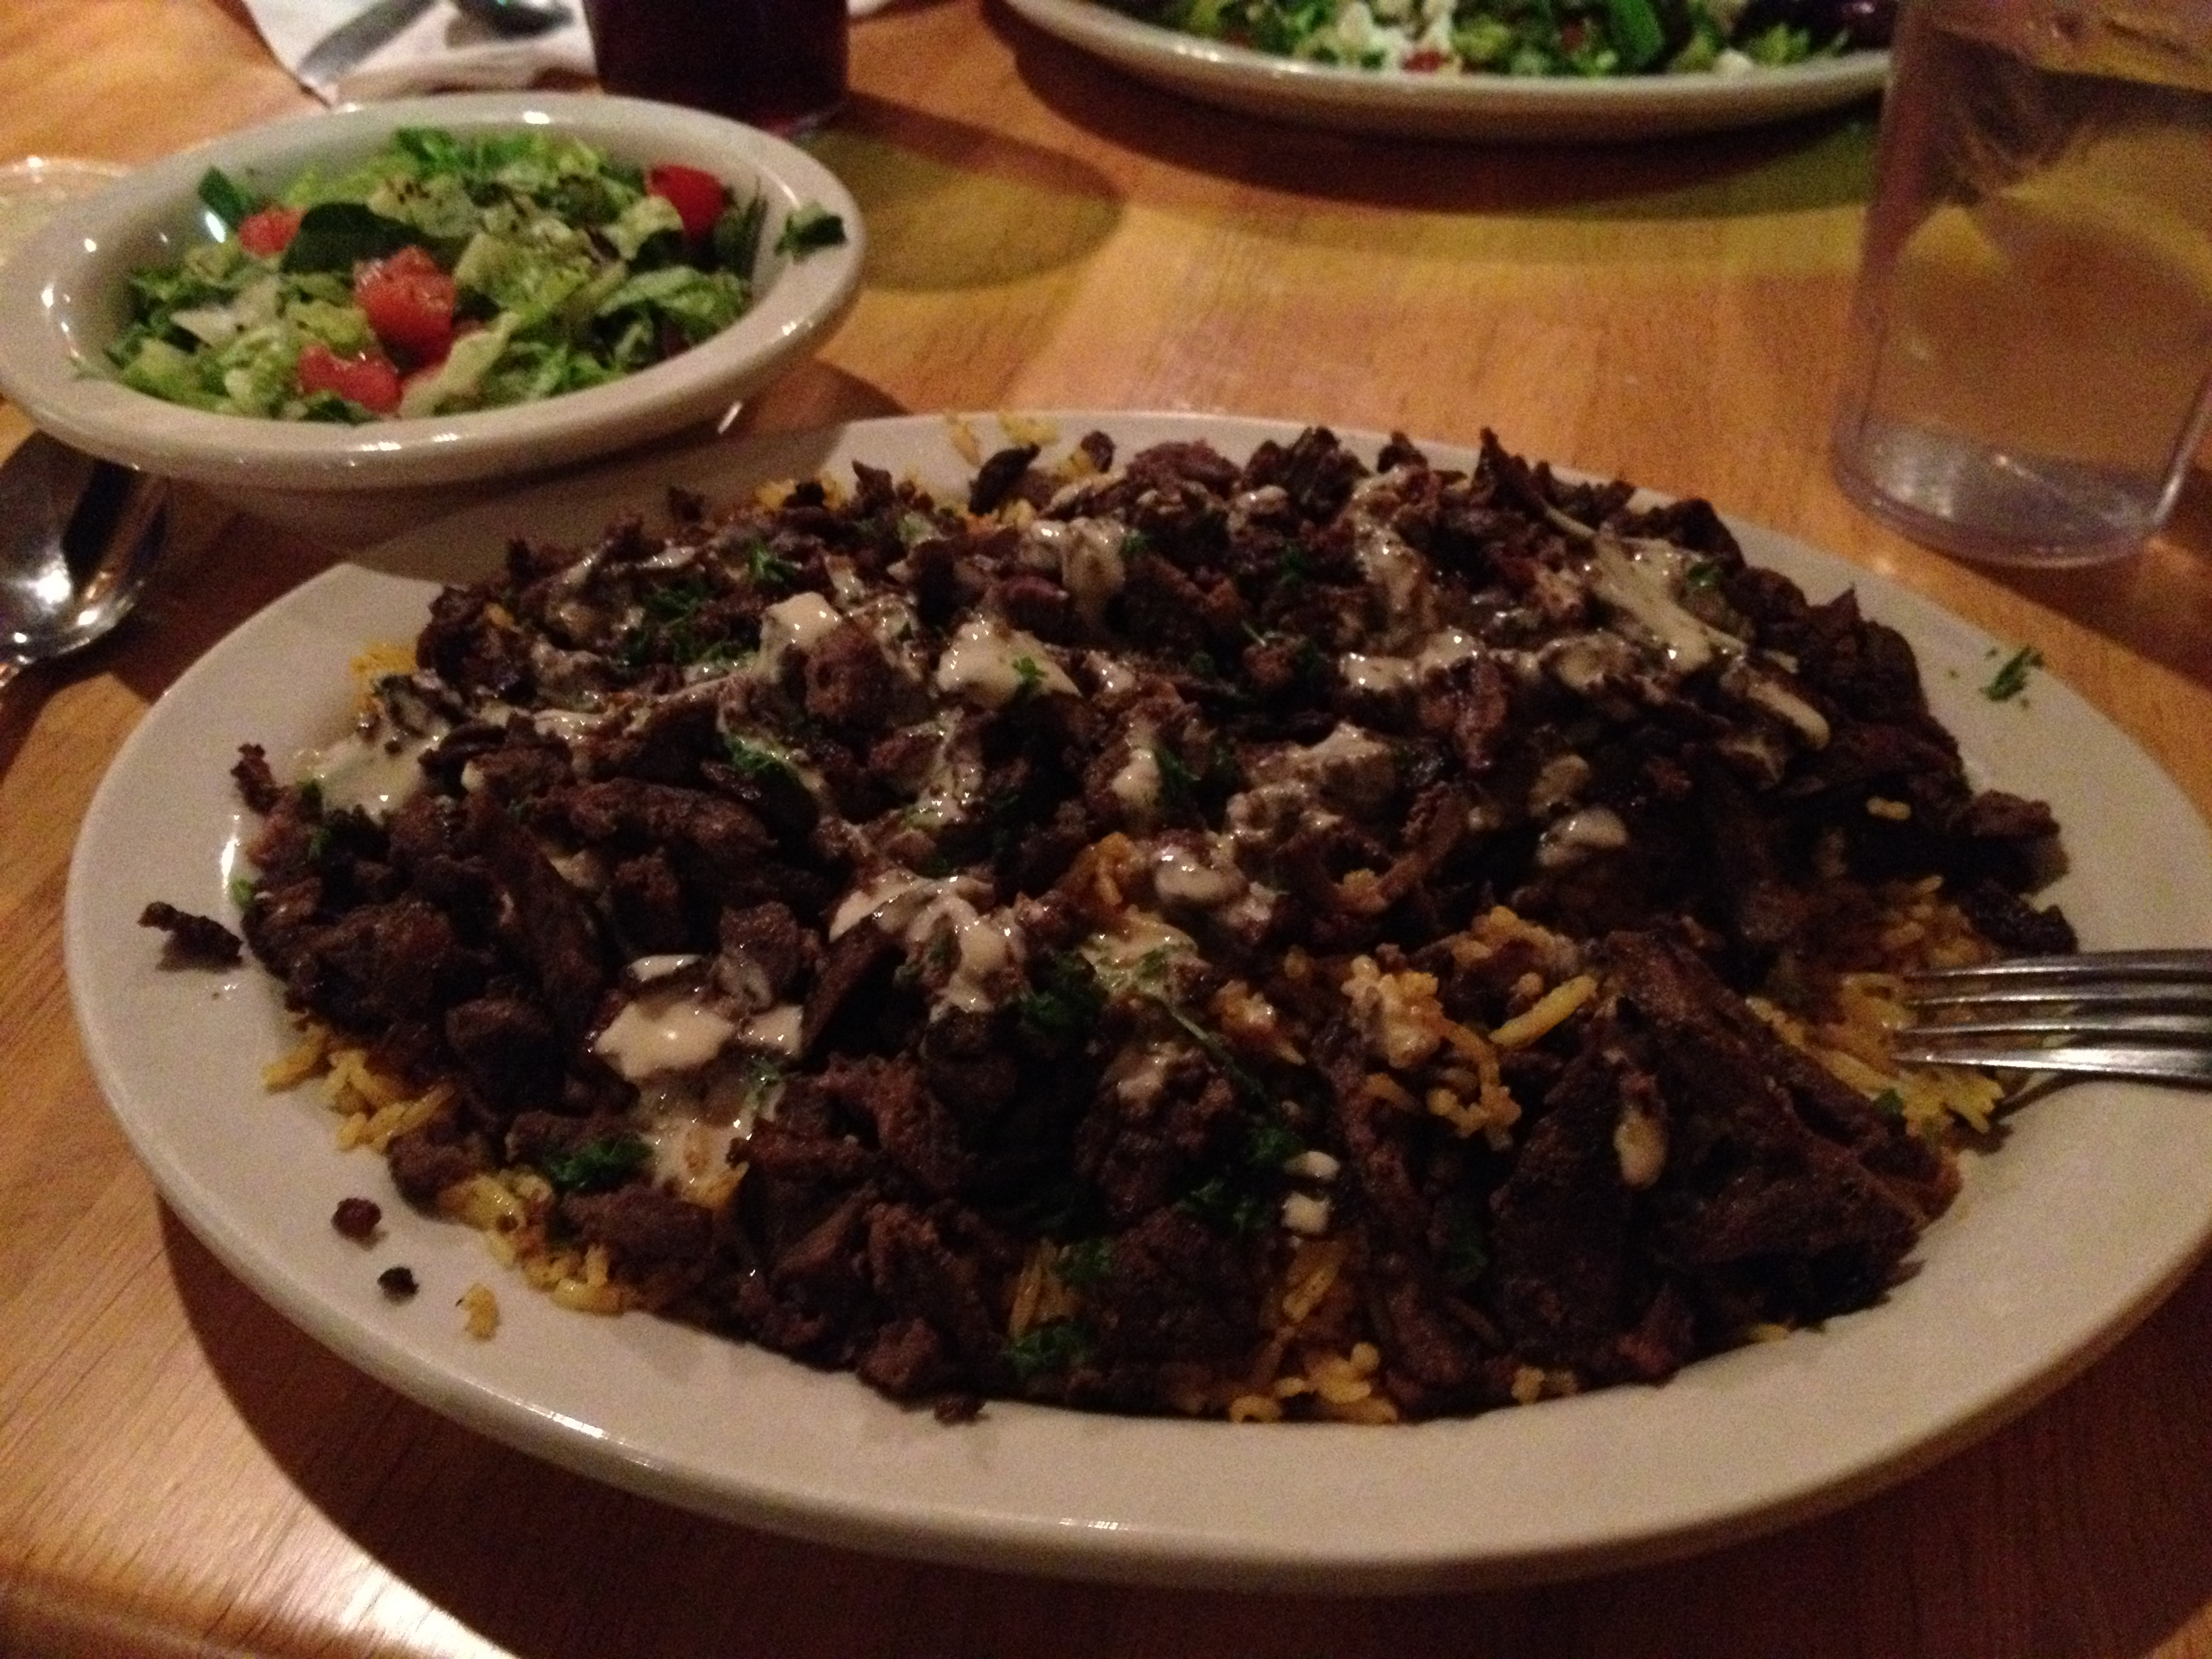 Lamb Shawerma over rice with a side salad